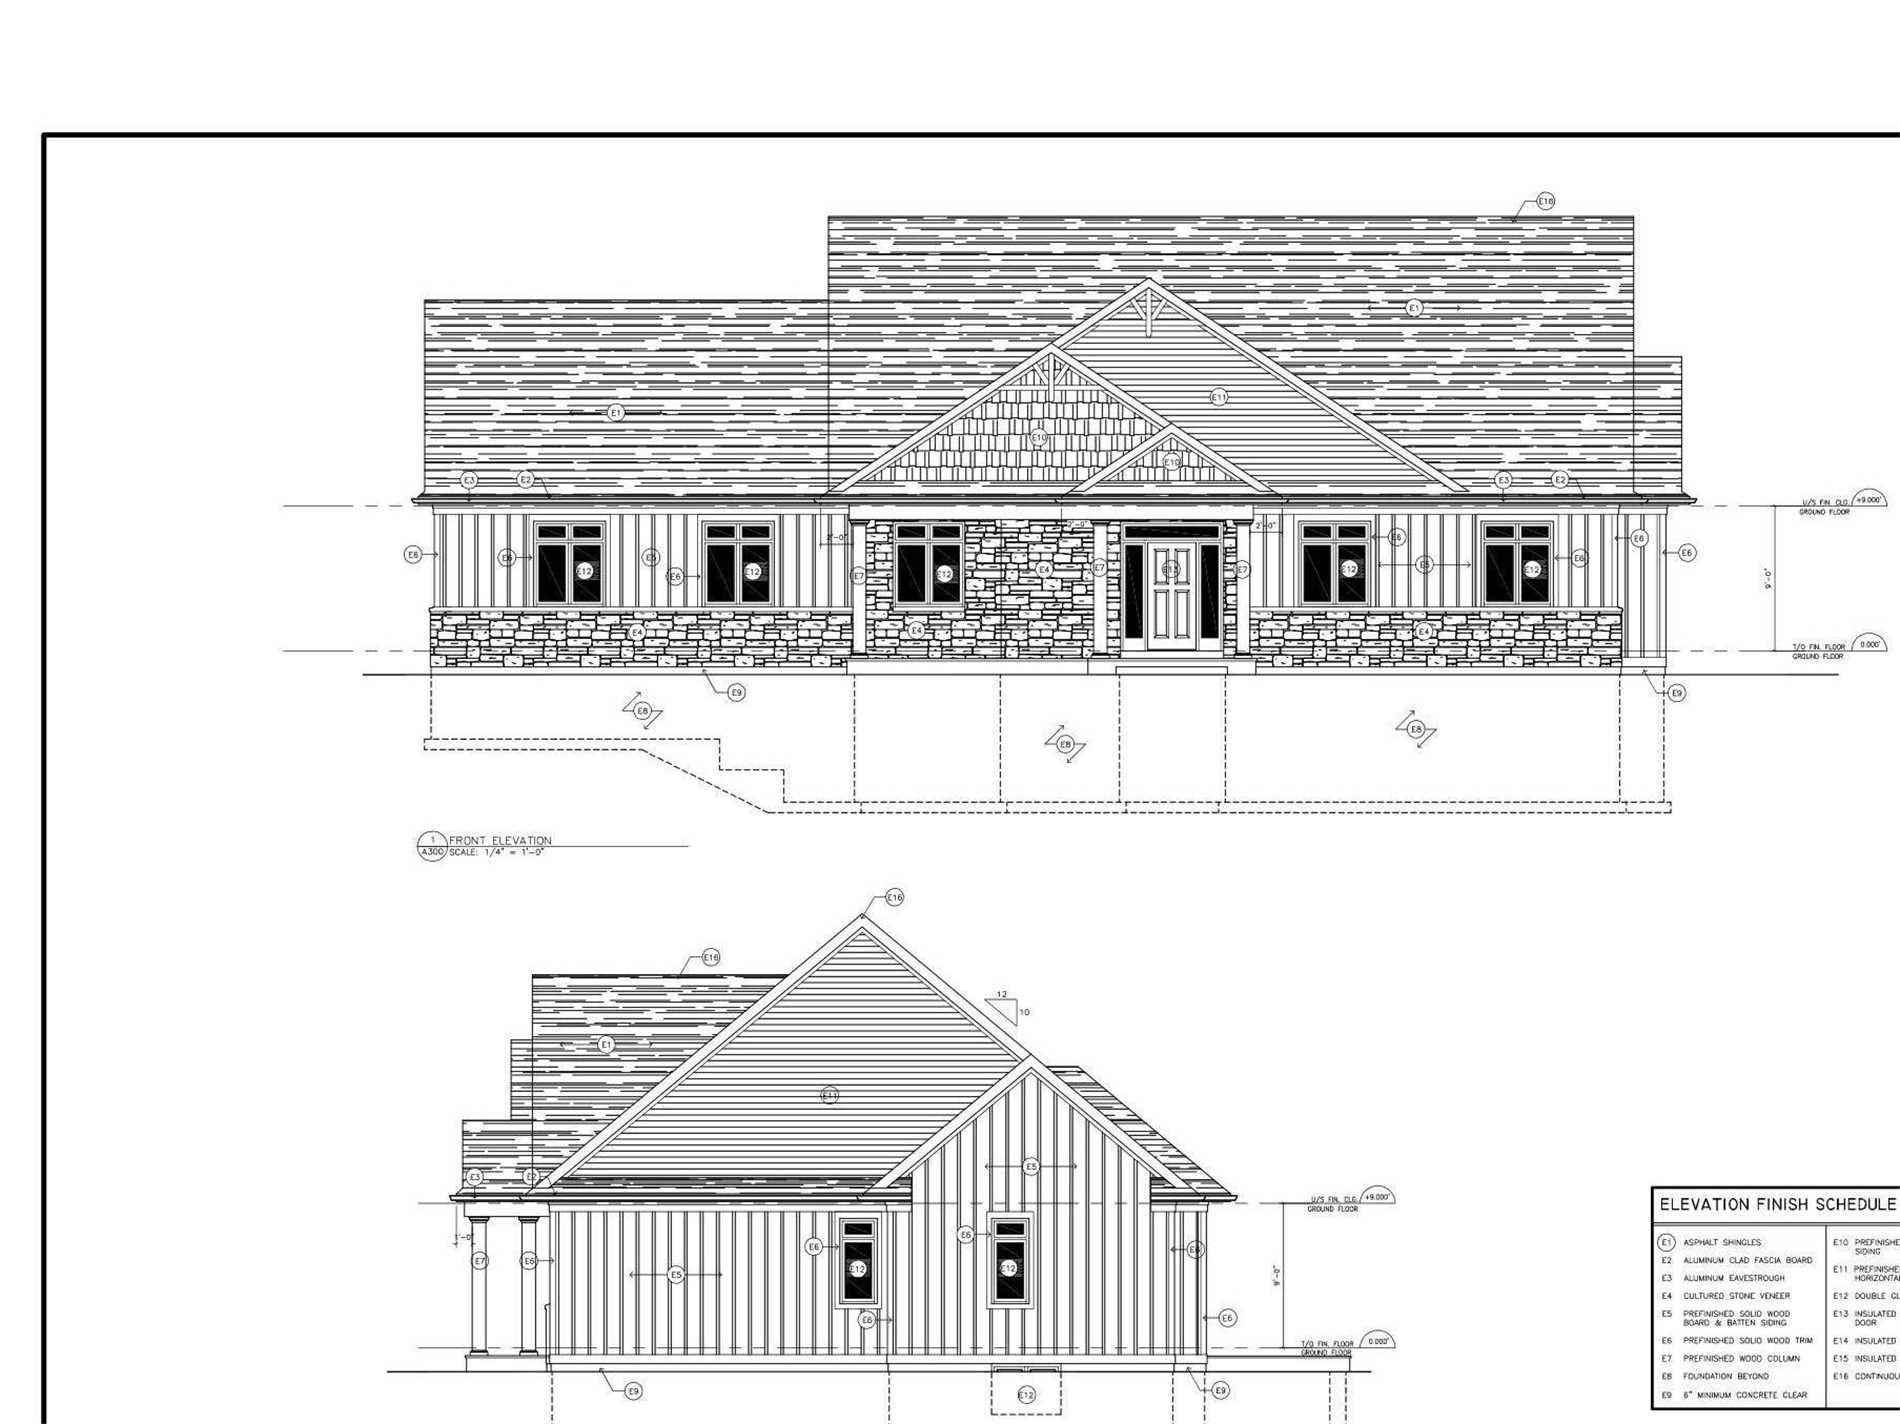 Fantastic 3 Bedroom, 2 Bathroom Bungalow On A 1 Acre Country Lot. September 2019 Occupancy Available. Buy Early And Pick Your Colours, Tile, Counters, Cabinets And Flooring. Built By Fidelity Homes Inc. And Backed By Tarion New Home Warranty. Our Standard Finishes Will Impress!